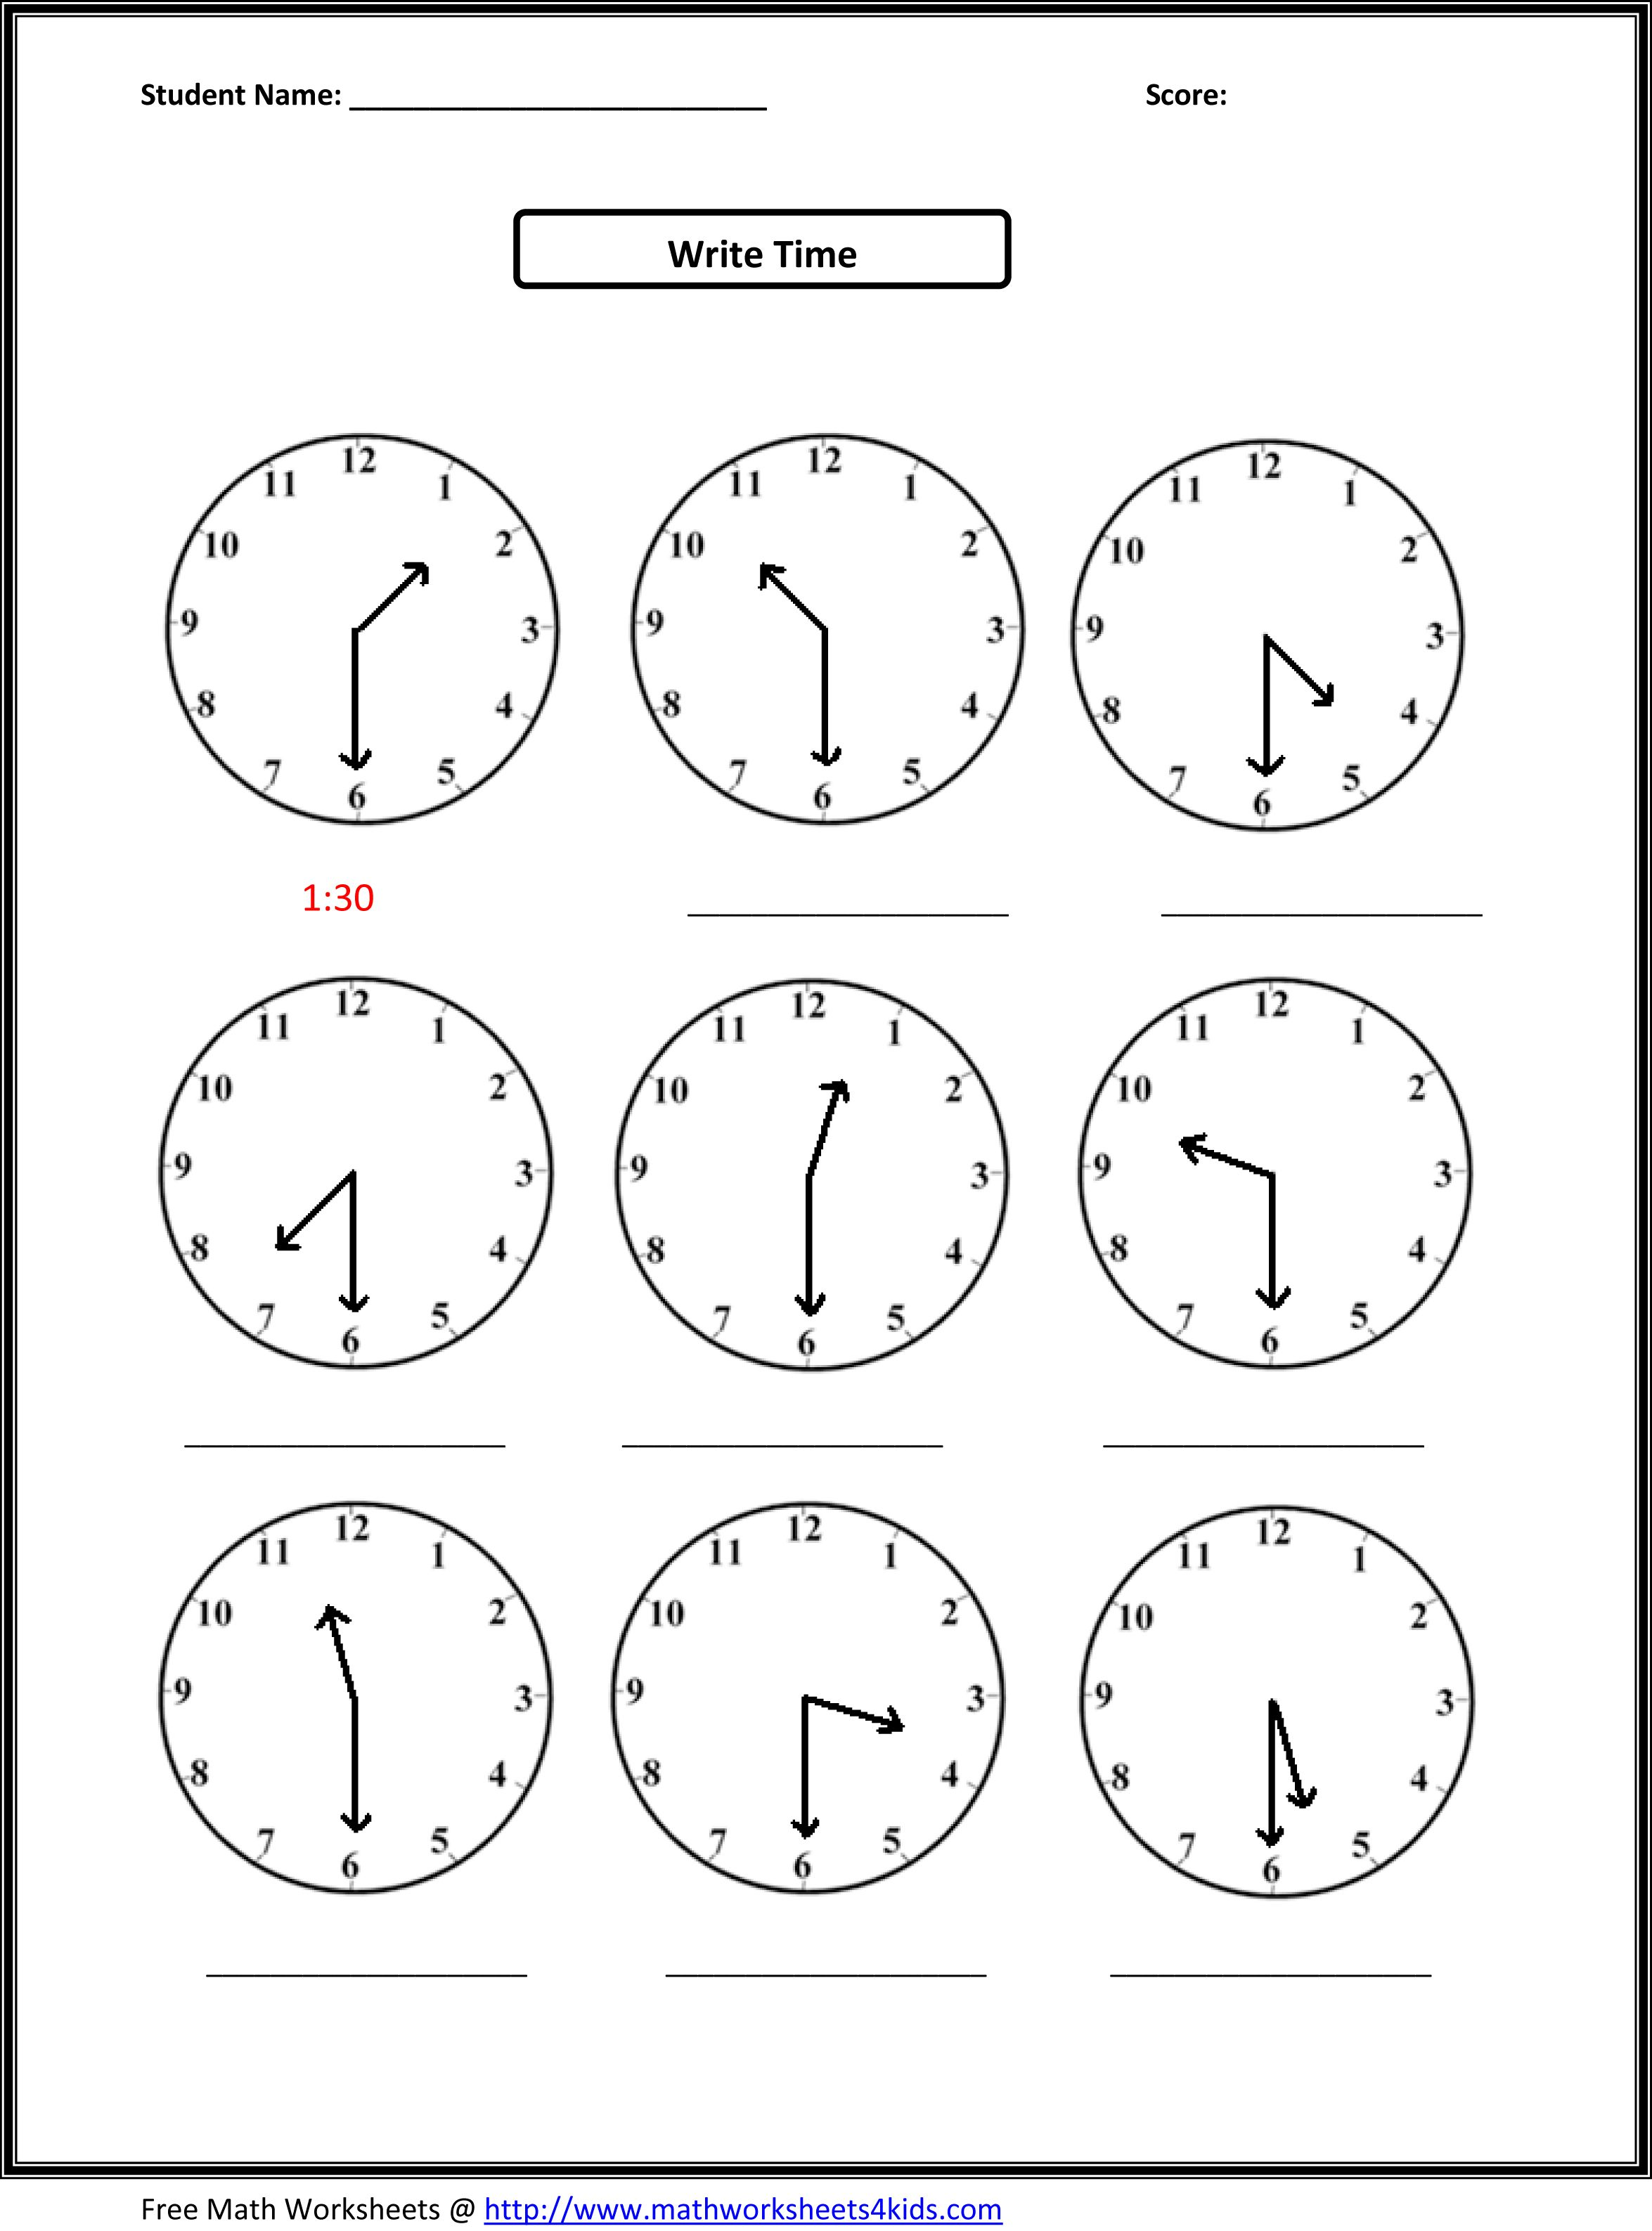 Weirdmailus  Marvelous Worksheet On Time For Grade   Reocurent With Interesting Free Printable Telling Time Worksheets Nd Grade  Reocurent With Beautiful Nouns Printable Worksheets Also Fractions Ks Worksheets In Addition Math Grade  Worksheet And African Music Worksheet As Well As Mode Mean Median Range Worksheets Additionally Addition Worksheet For Nd Grade From Reocurentcom With Weirdmailus  Interesting Worksheet On Time For Grade   Reocurent With Beautiful Free Printable Telling Time Worksheets Nd Grade  Reocurent And Marvelous Nouns Printable Worksheets Also Fractions Ks Worksheets In Addition Math Grade  Worksheet From Reocurentcom